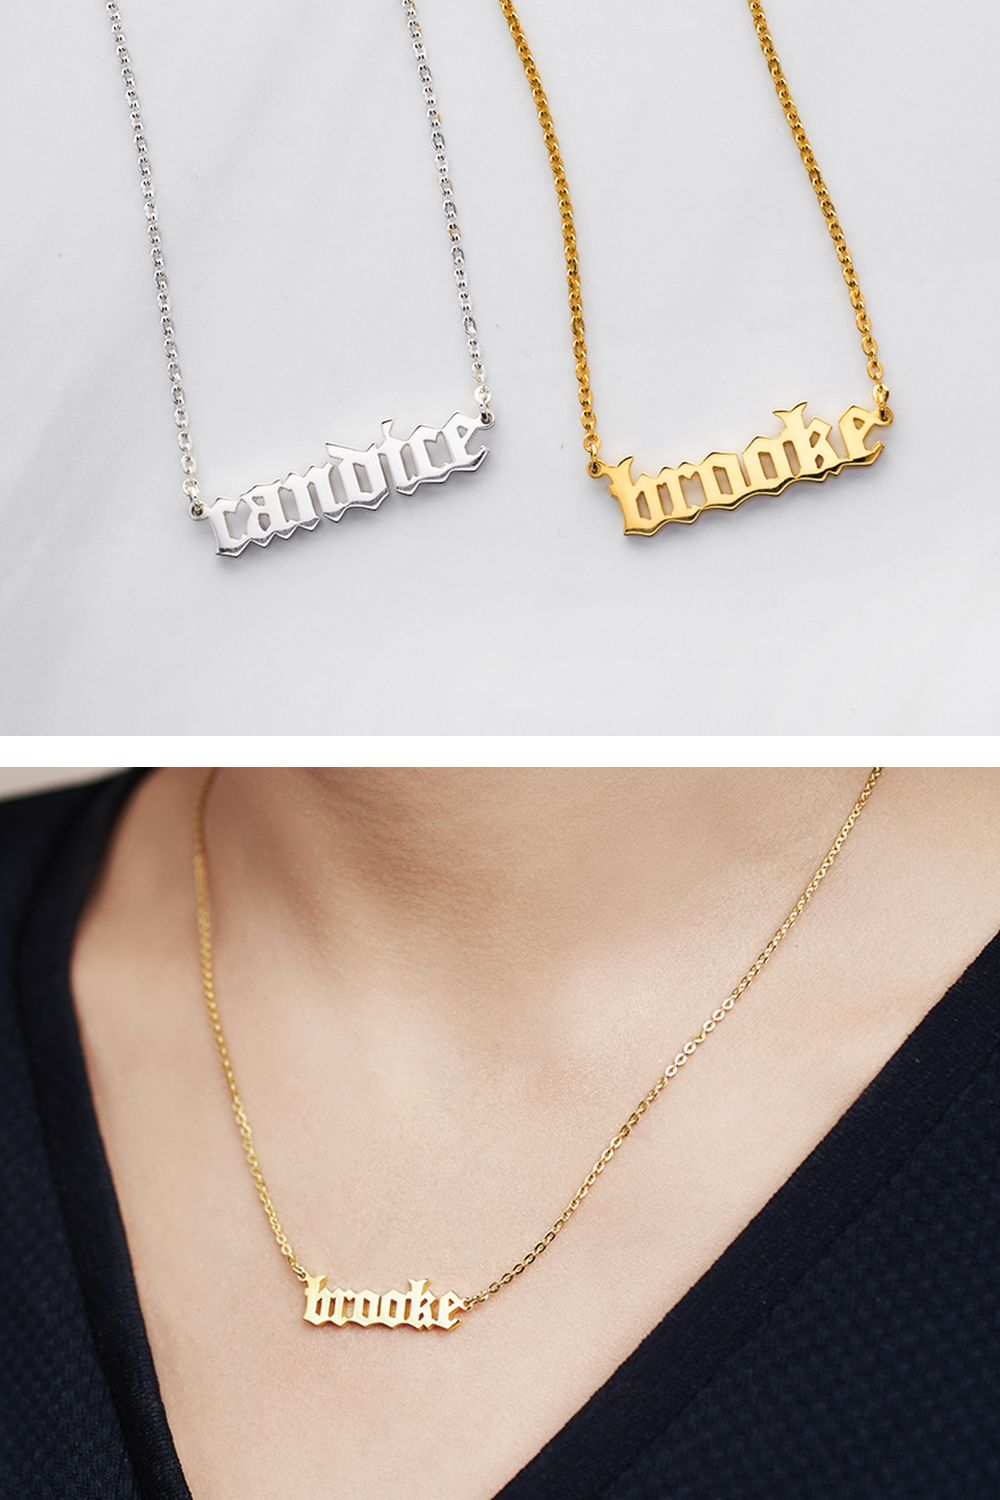 Old English Name Necklace | Gifts | Pinterest | Gifts, Christmas ...